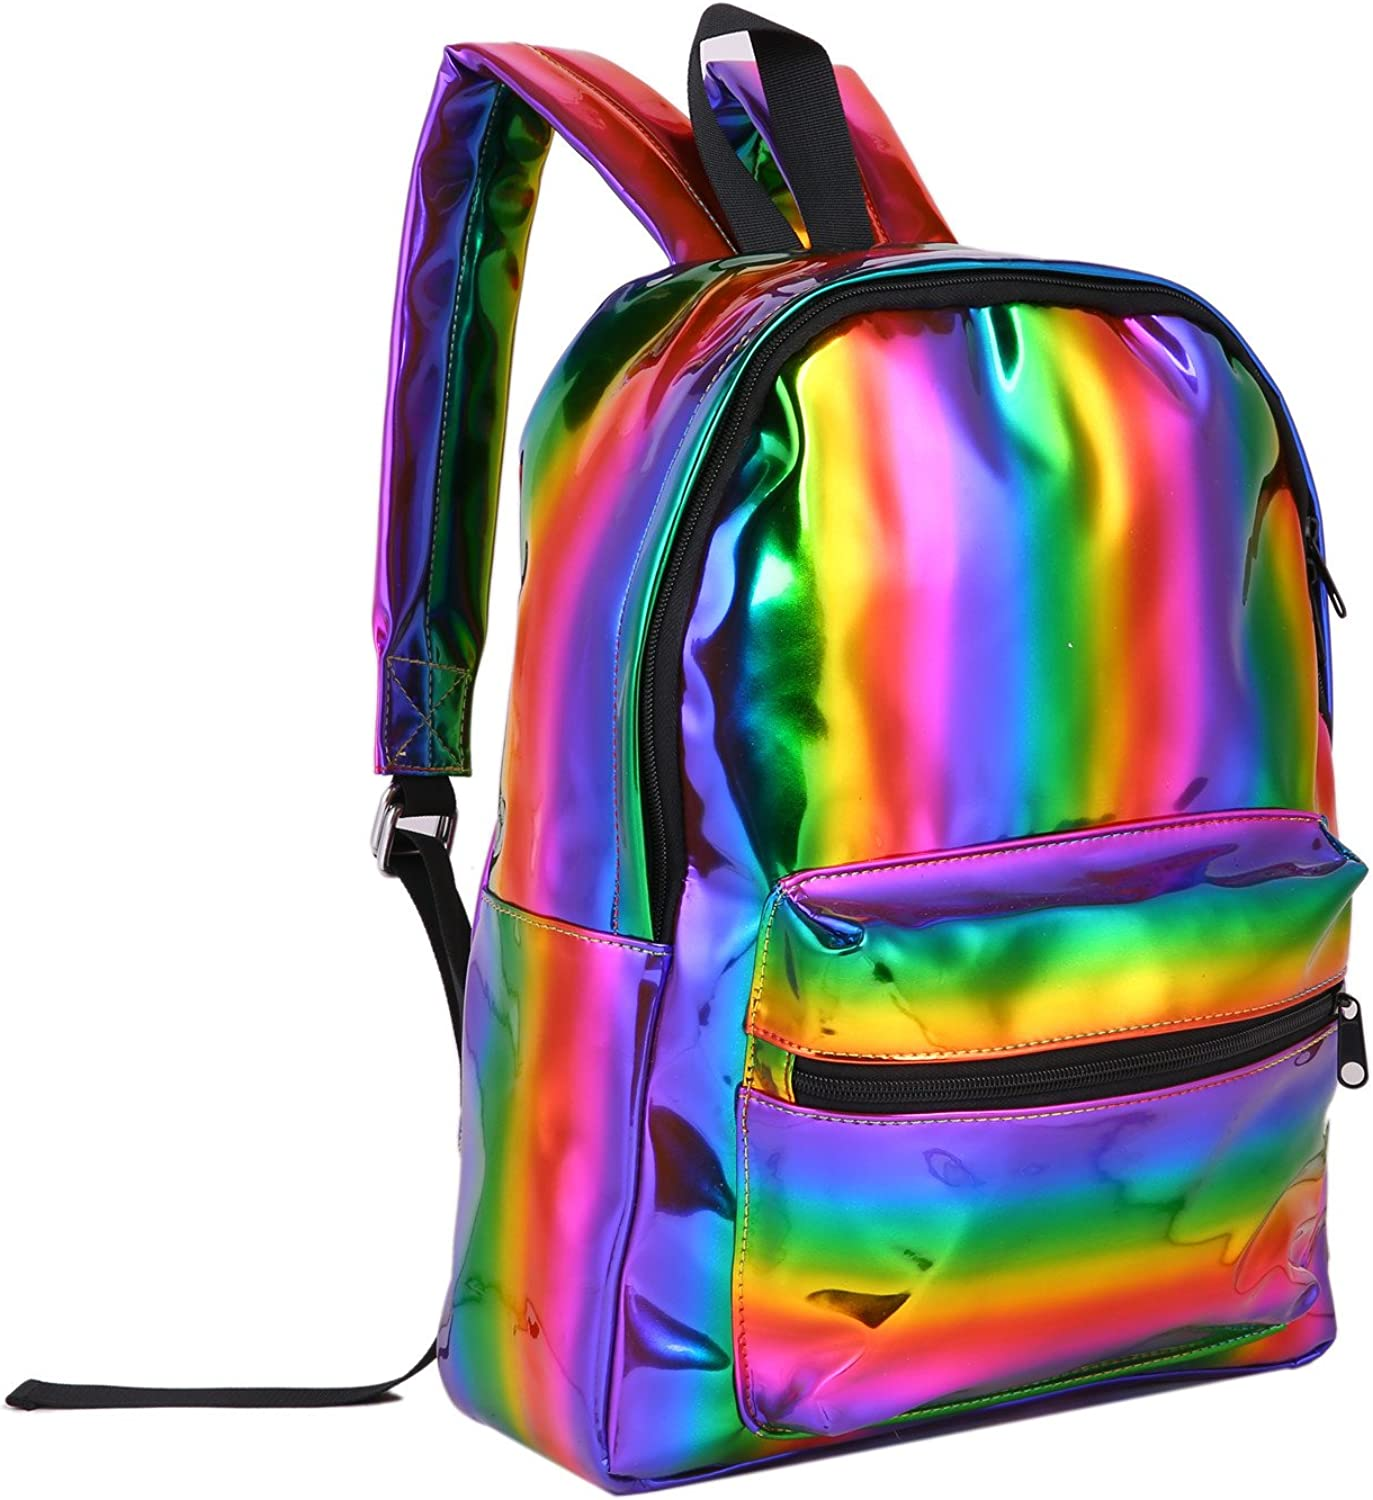 Mogor Girl's Holographic PU Leather School Backpack Travel Casual Daypack for Women